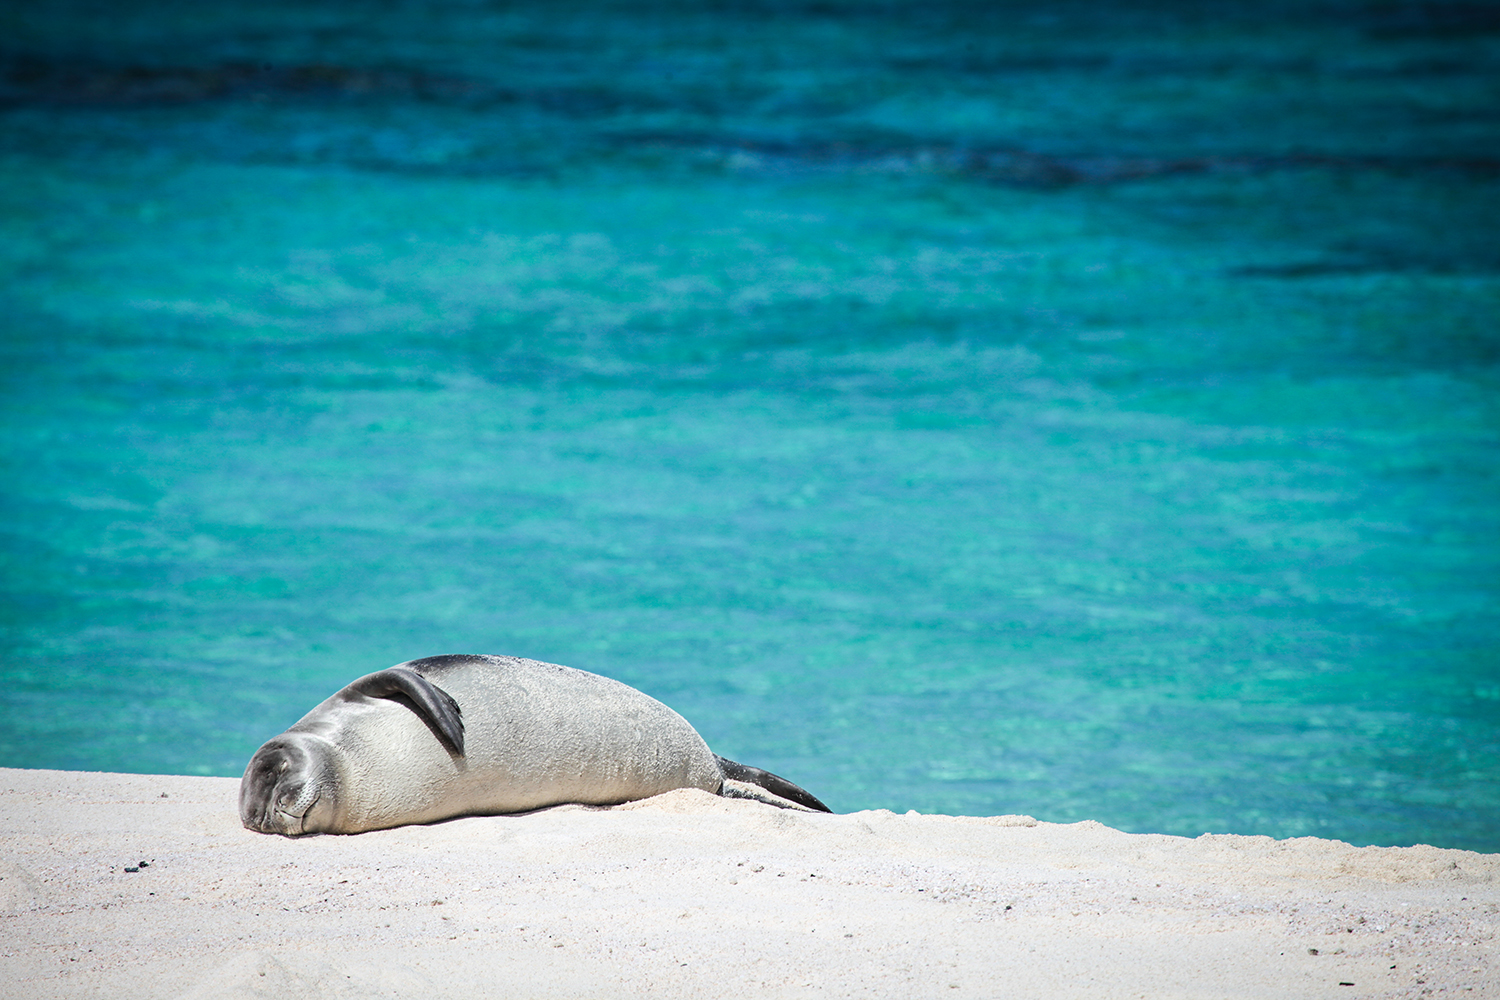 Hawaii's Highly Endangered Monk Seals Are (Finally) Having a Good Year | Hakai Magazine